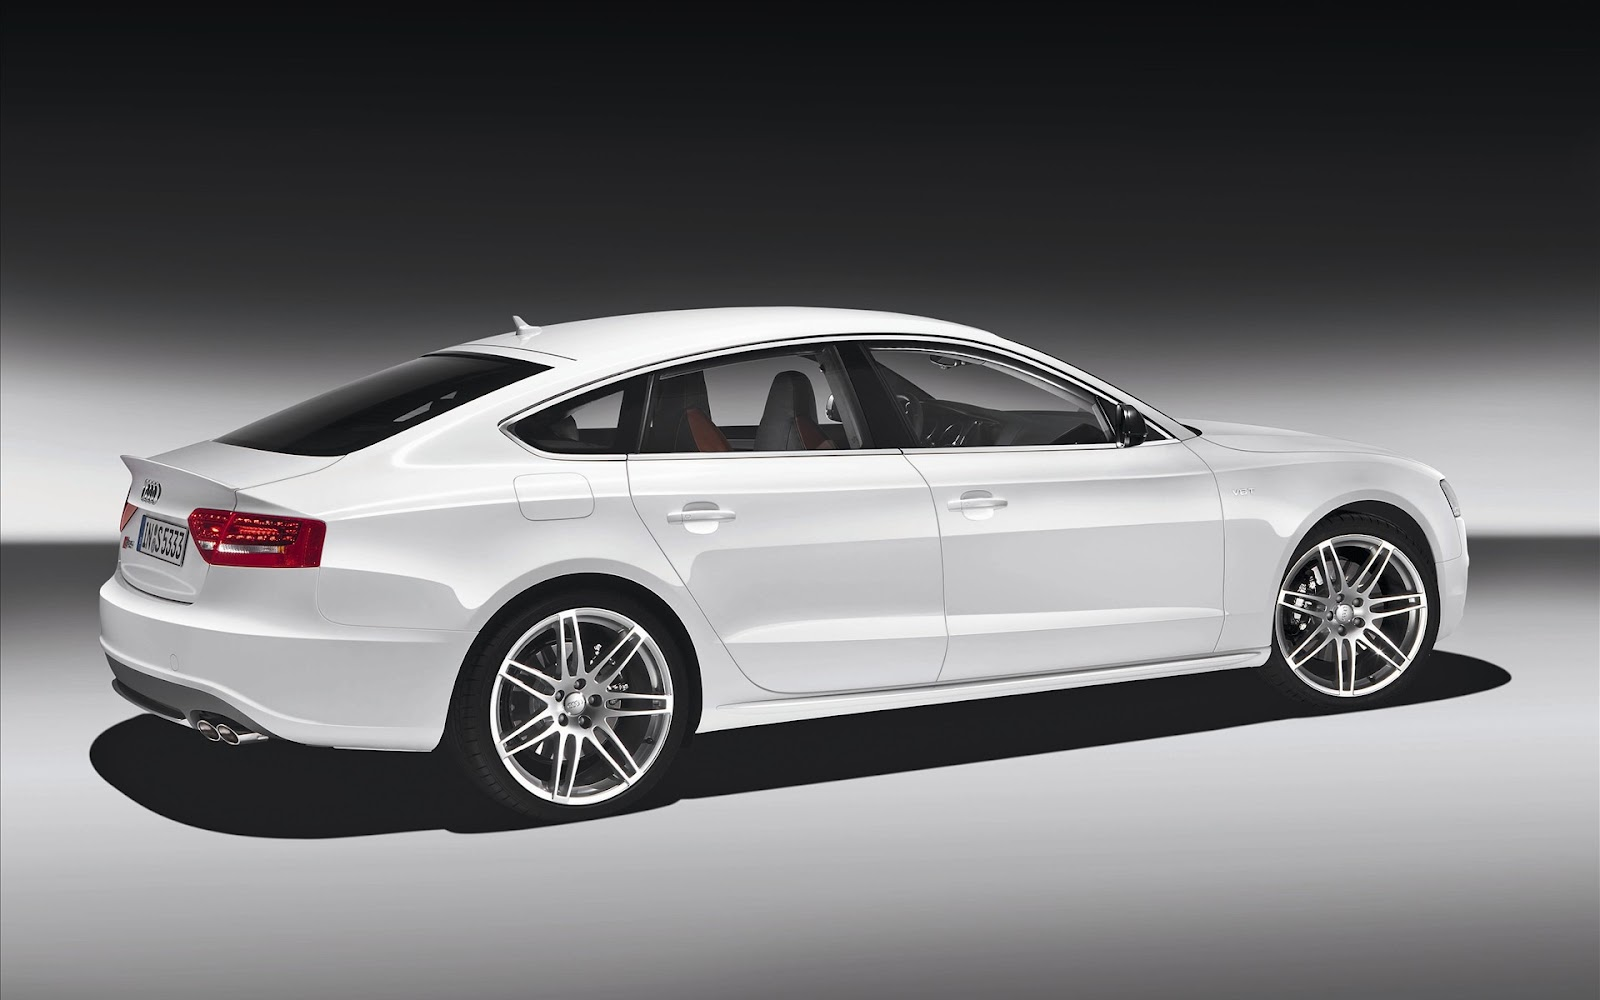 Hd Car Wallpapers White Audi S5 Wallpaper